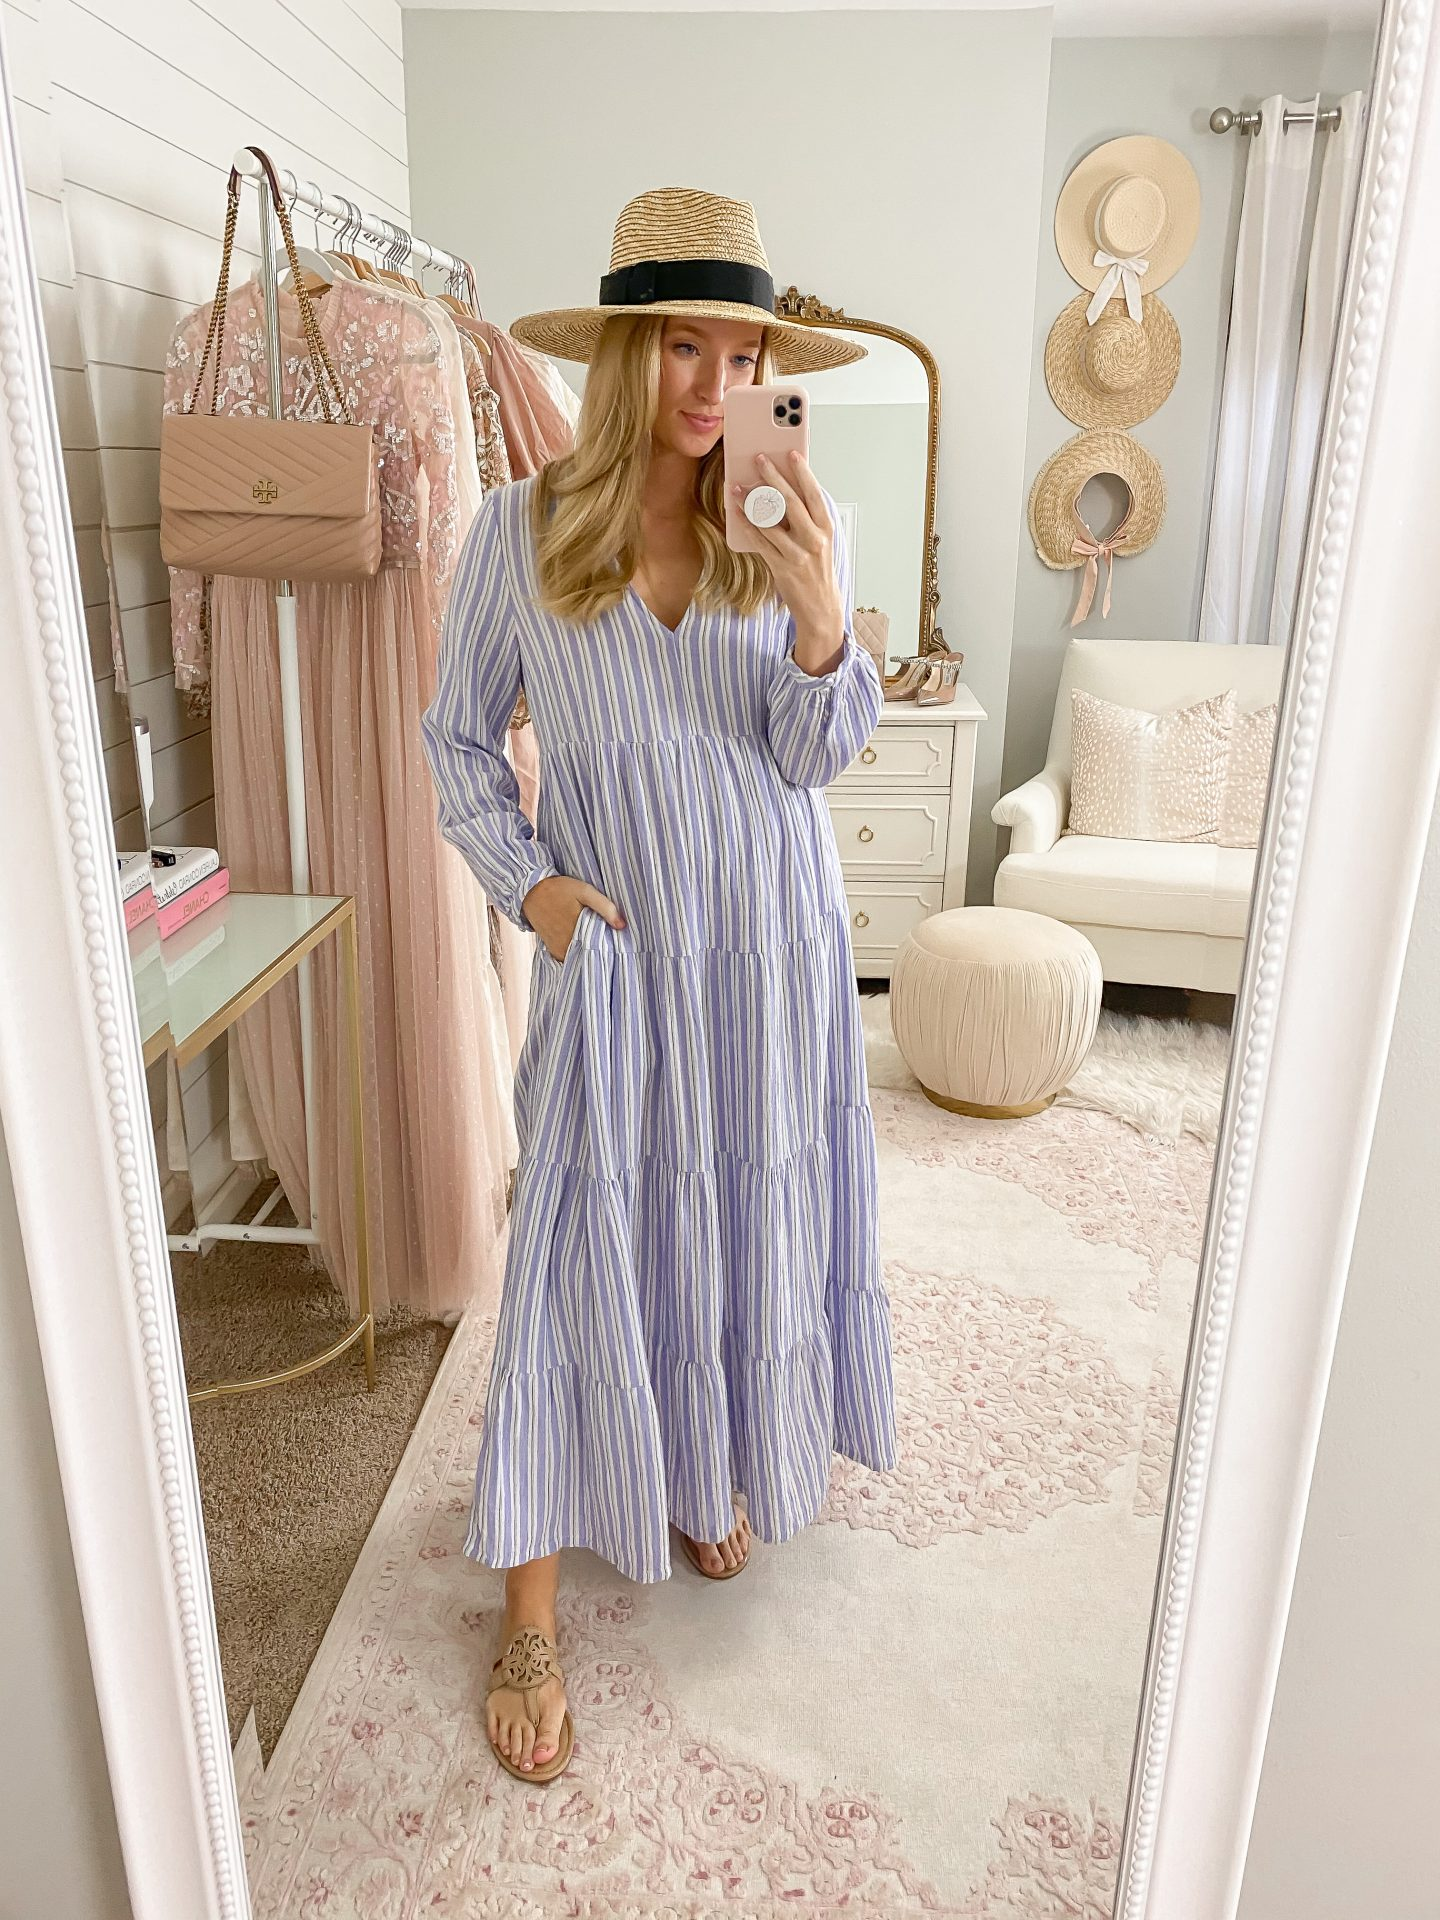 Spring maxi dress | My Favorite Looks From February